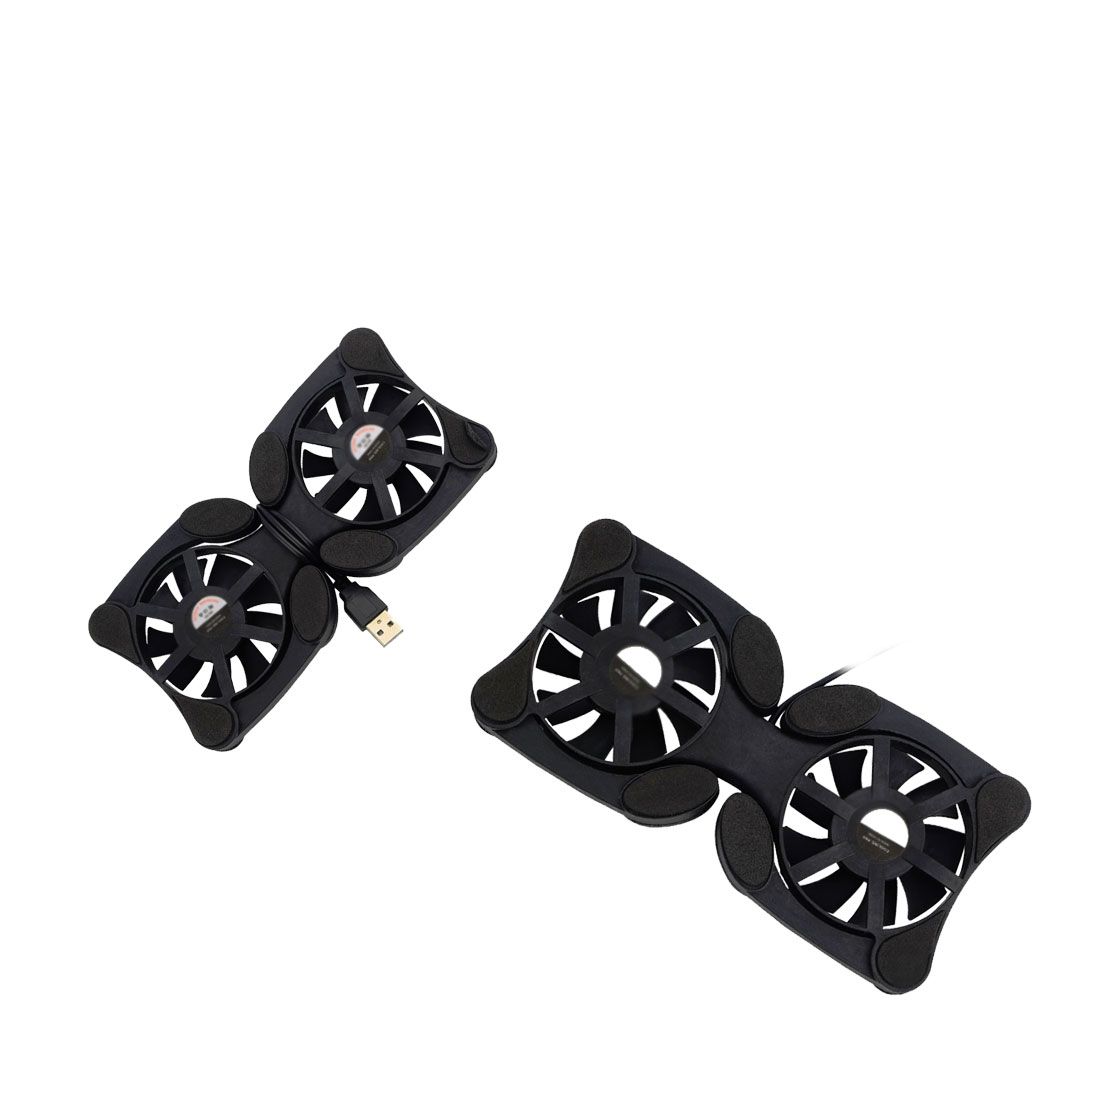 NOYOKERE USB Laptop <font><b>Cooling</b></font> 1pcs USB Port Mini Octopus <font><b>Notebook</b></font> <font><b>Fan</b></font> Cooler <font><b>Cooling</b></font> Pad For 7-15 inch Laptop image